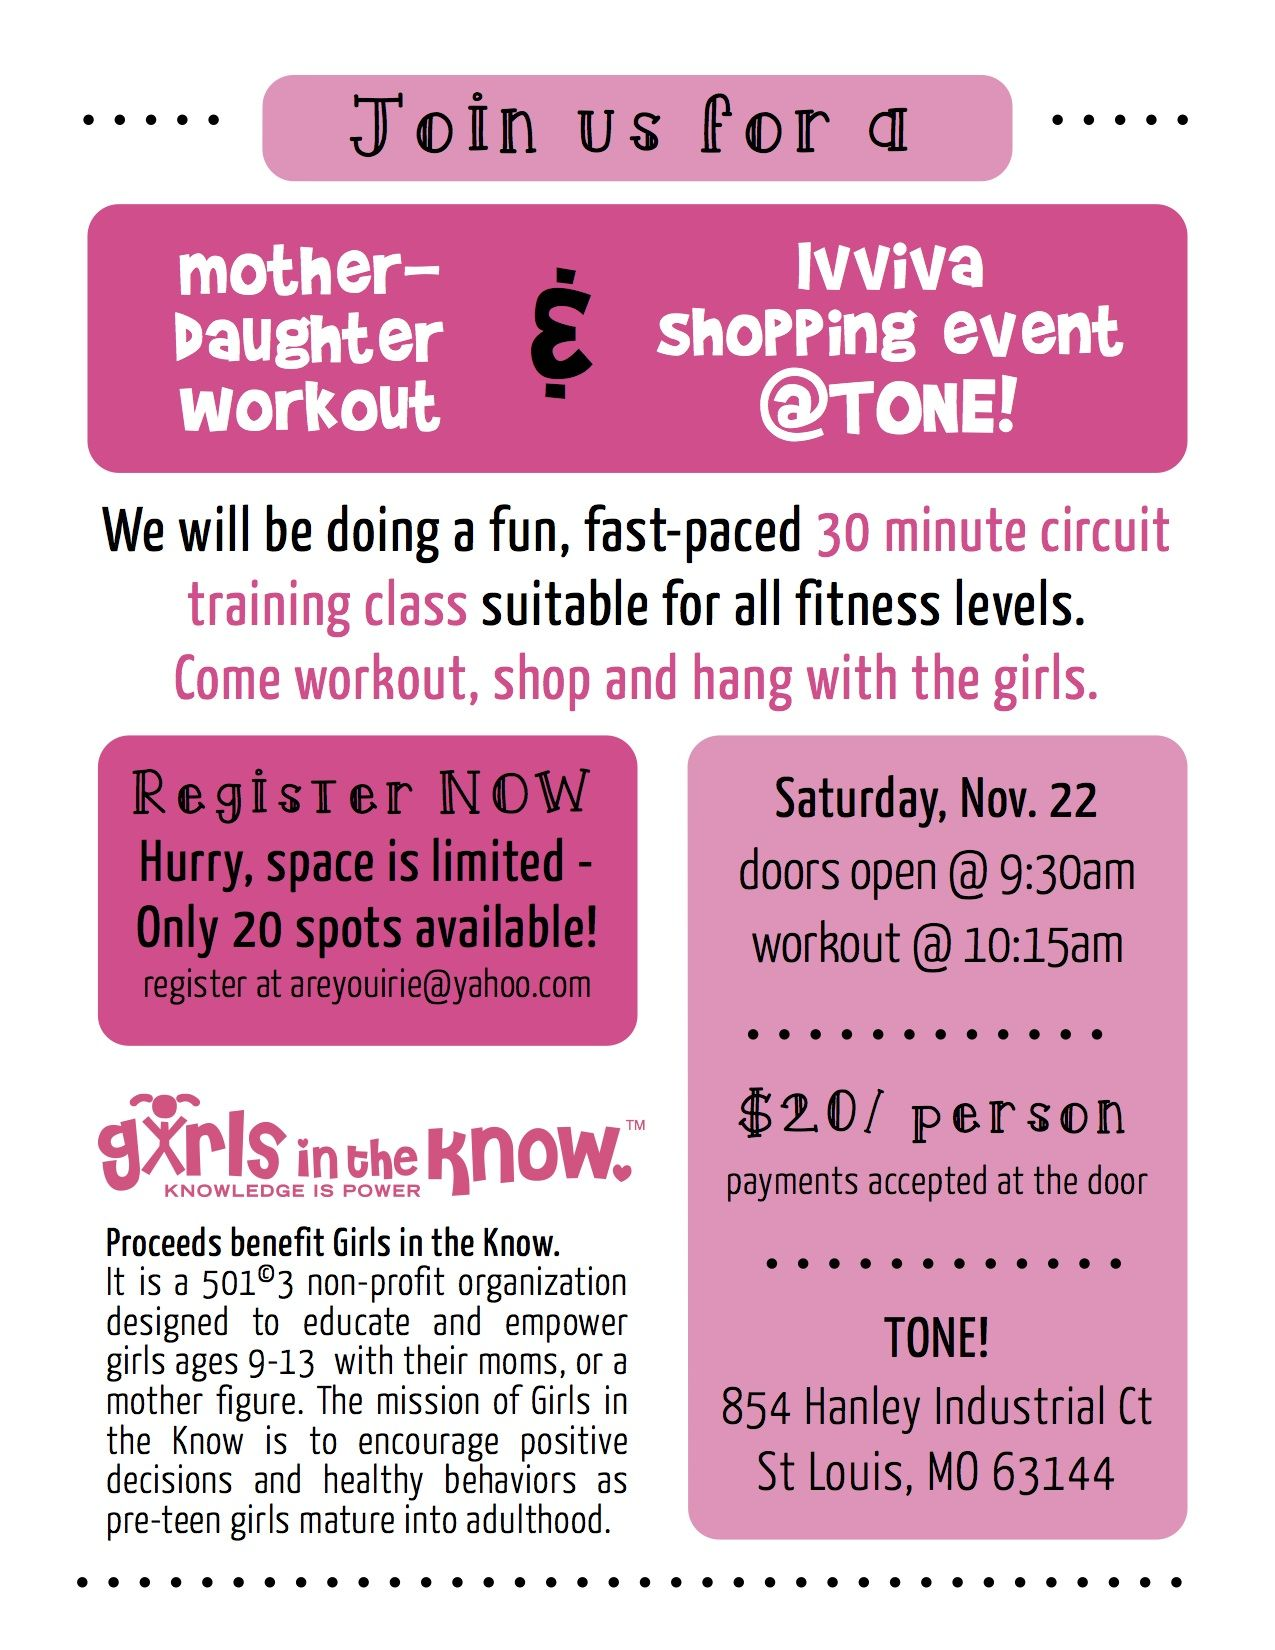 Girls in the Know Mother-Daughter Workout & Shopping Event  We will be doing a fun, fast-paced 30 minute circuit training class suitable for all fitness levels. Come workout, shop and hang with the girls.   Register now-space is limited to 20 participants!  $20/person